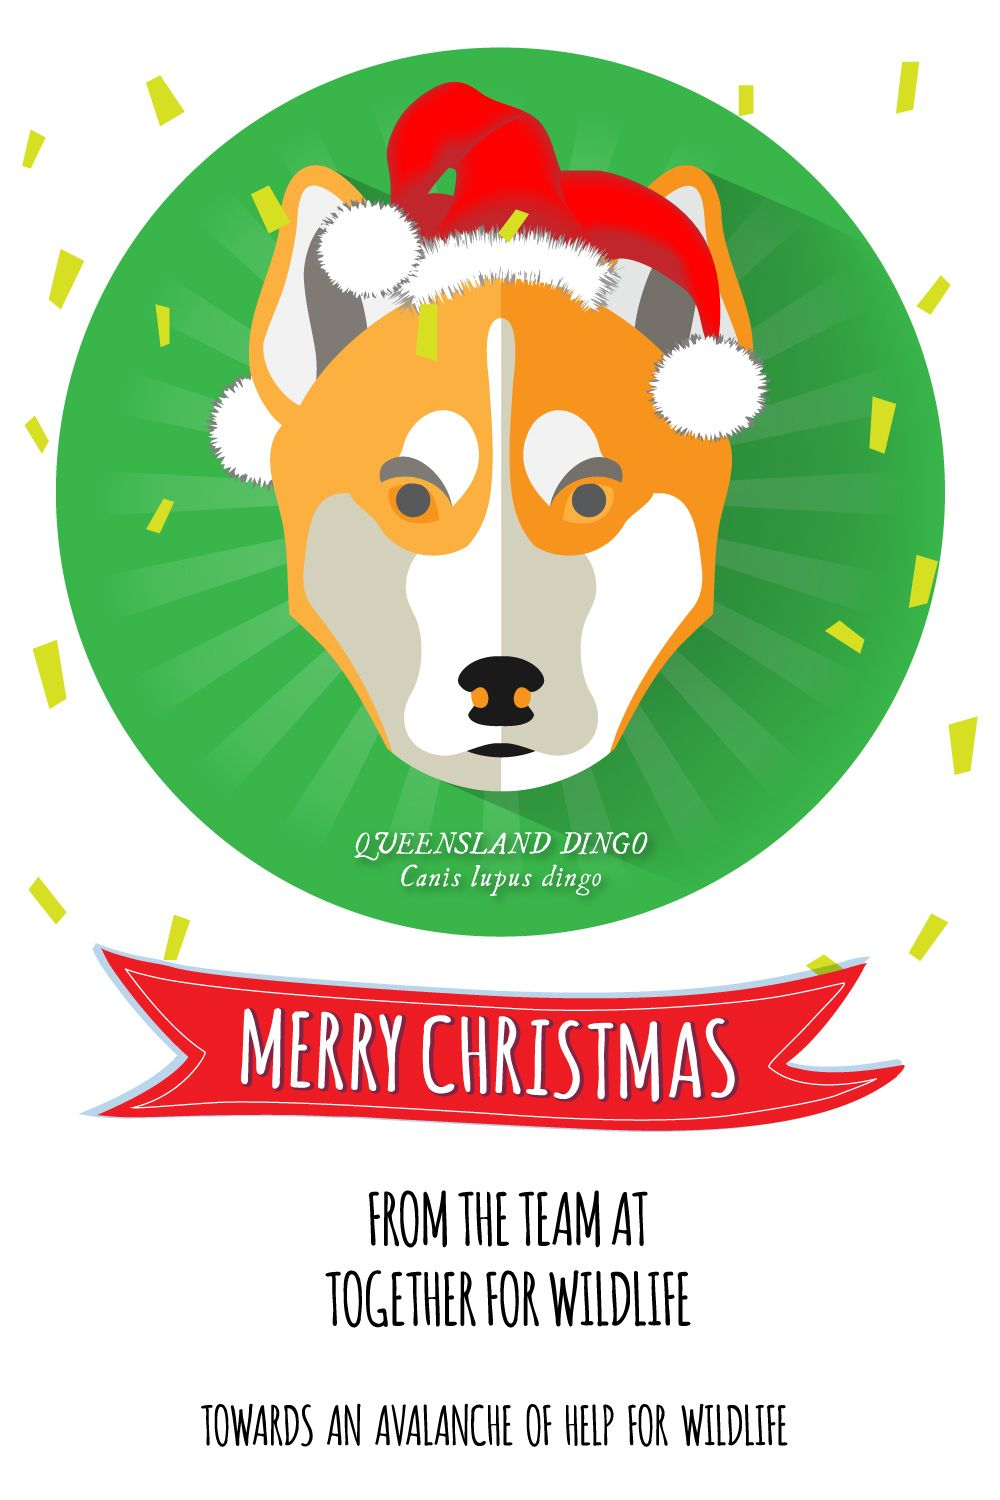 Merry Christmas From The Team At Together For Wildlife Wildlife Wildliferescue Merrychristmas Dingo Queenslanddingo Queen Merry Merry Christmas Wildlife